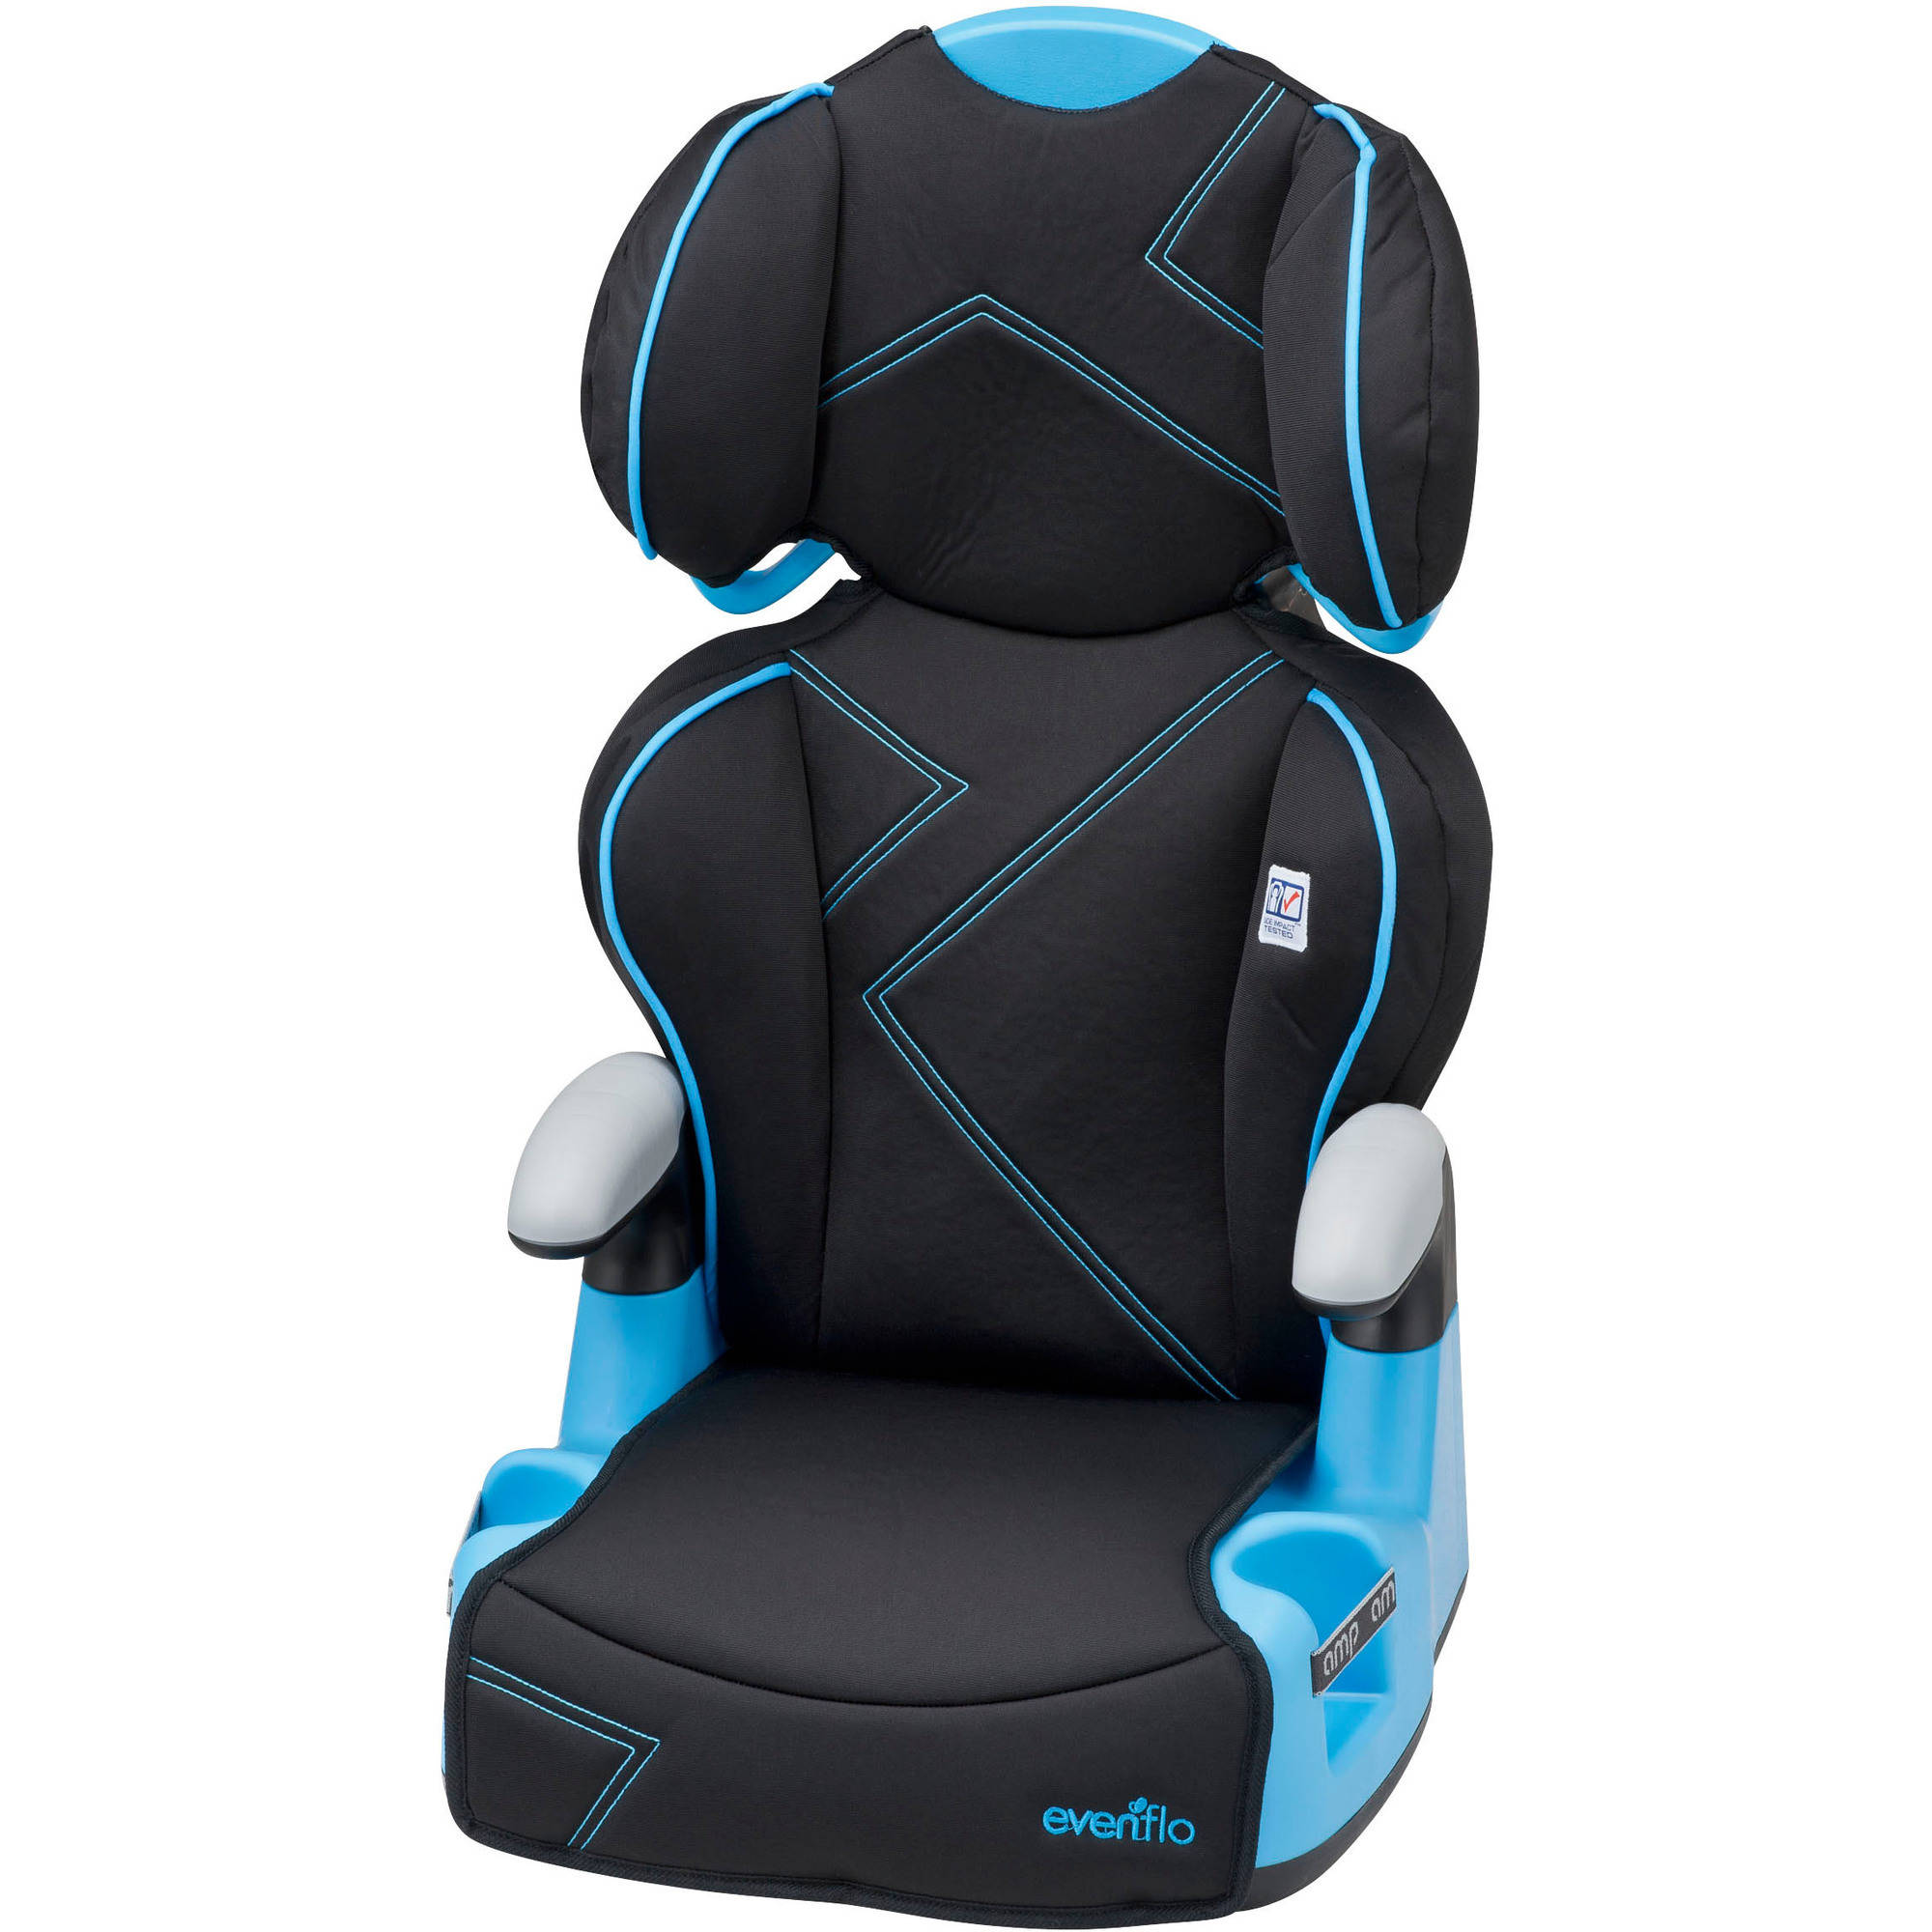 Evenflo AMP High Back Booster Car Seat, Blue Angles